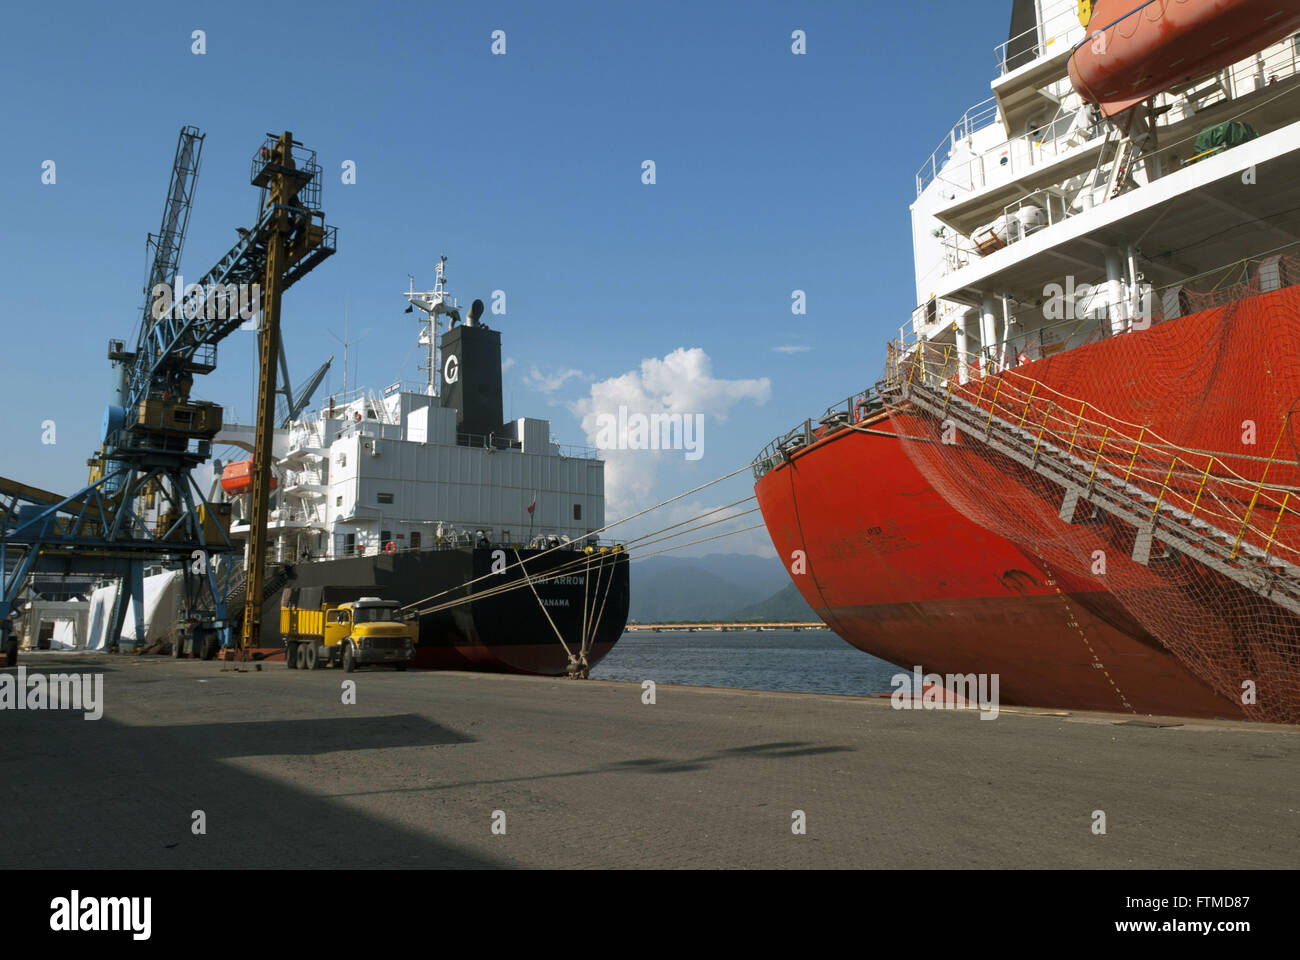 Ship Owner Gearbulk docked on the side of the port of Santos - Stock Image